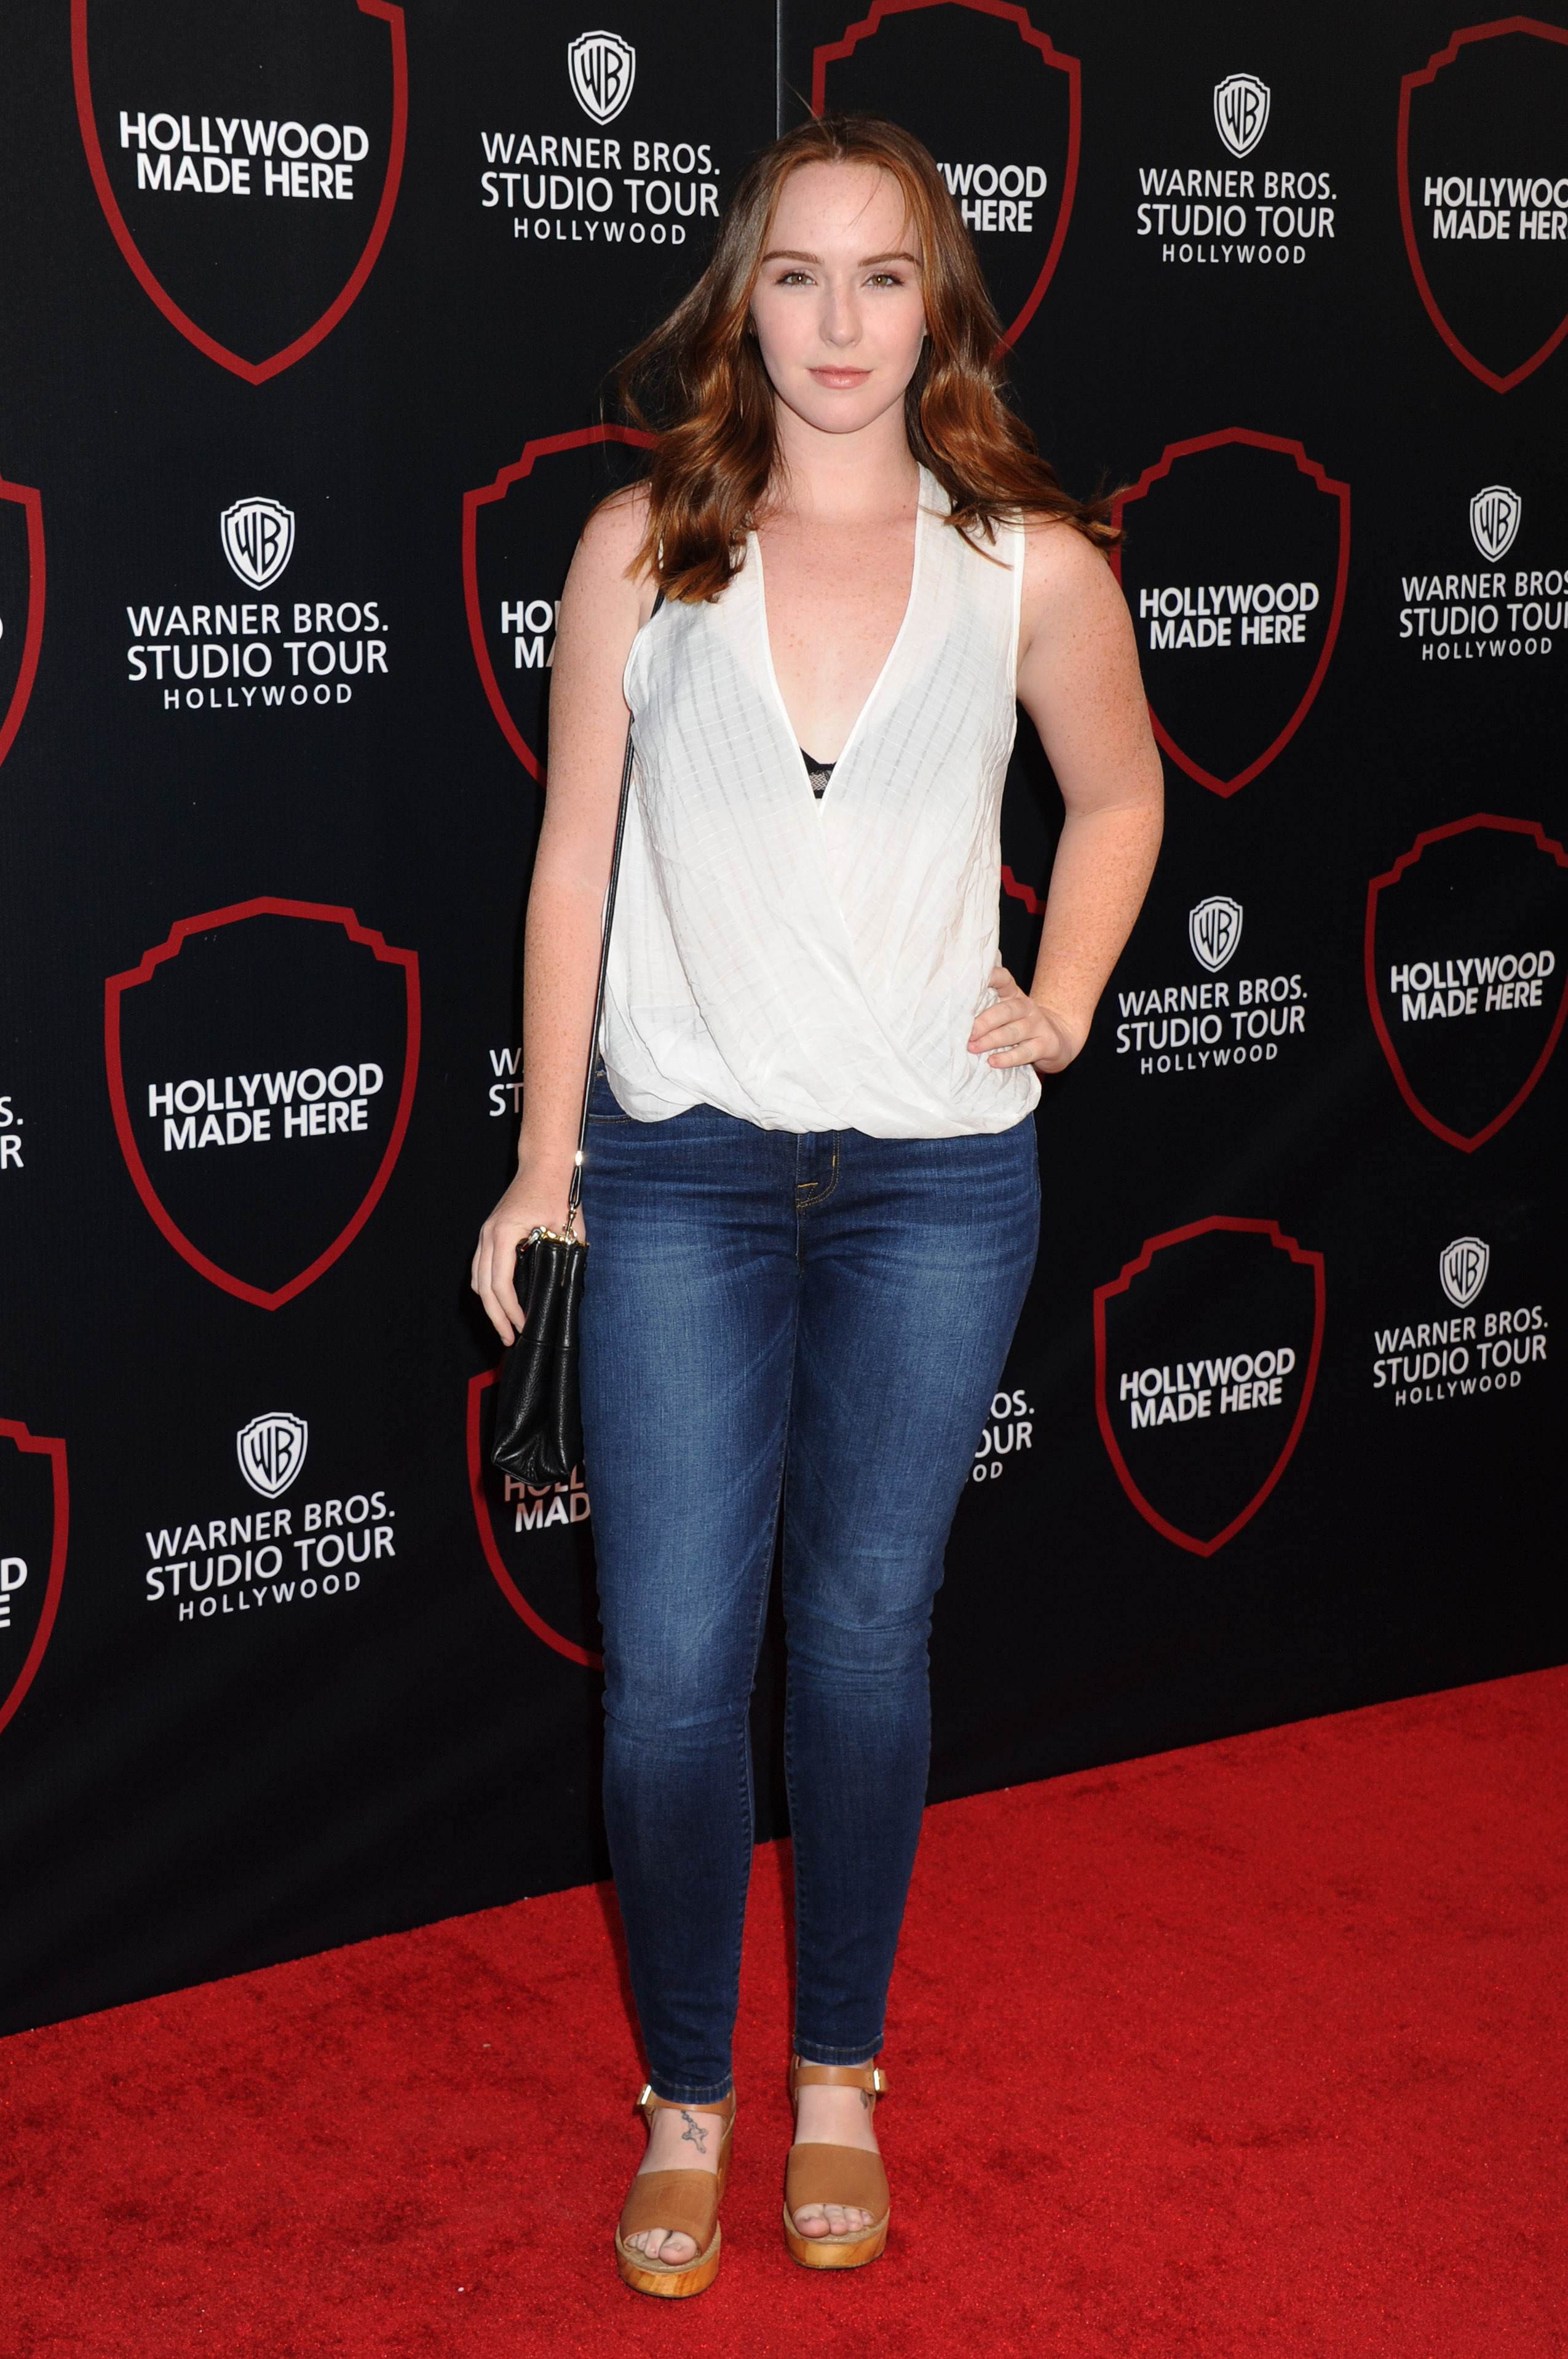 camryn grimes biocamryn grimes imdb, camryn grimes movies, camryn grimes swordfish, camryn grimes bio, camryn grimes siblings, camryn grimes 2017, camryn grimes salary, camryn grimes movies and tv shows, camryn grimes tattoo, camryn grimes snapchat, camryn grimes instagram, camryn grimes and scott grimes, camryn grimes oliver singer, camryn grimes mariah copeland, camryn grimes the young and the restless, camryn grimes twitter, camryn grimes feet, camryn grimes magic mike, camryn grimes net worth, camryn grimes pregnant